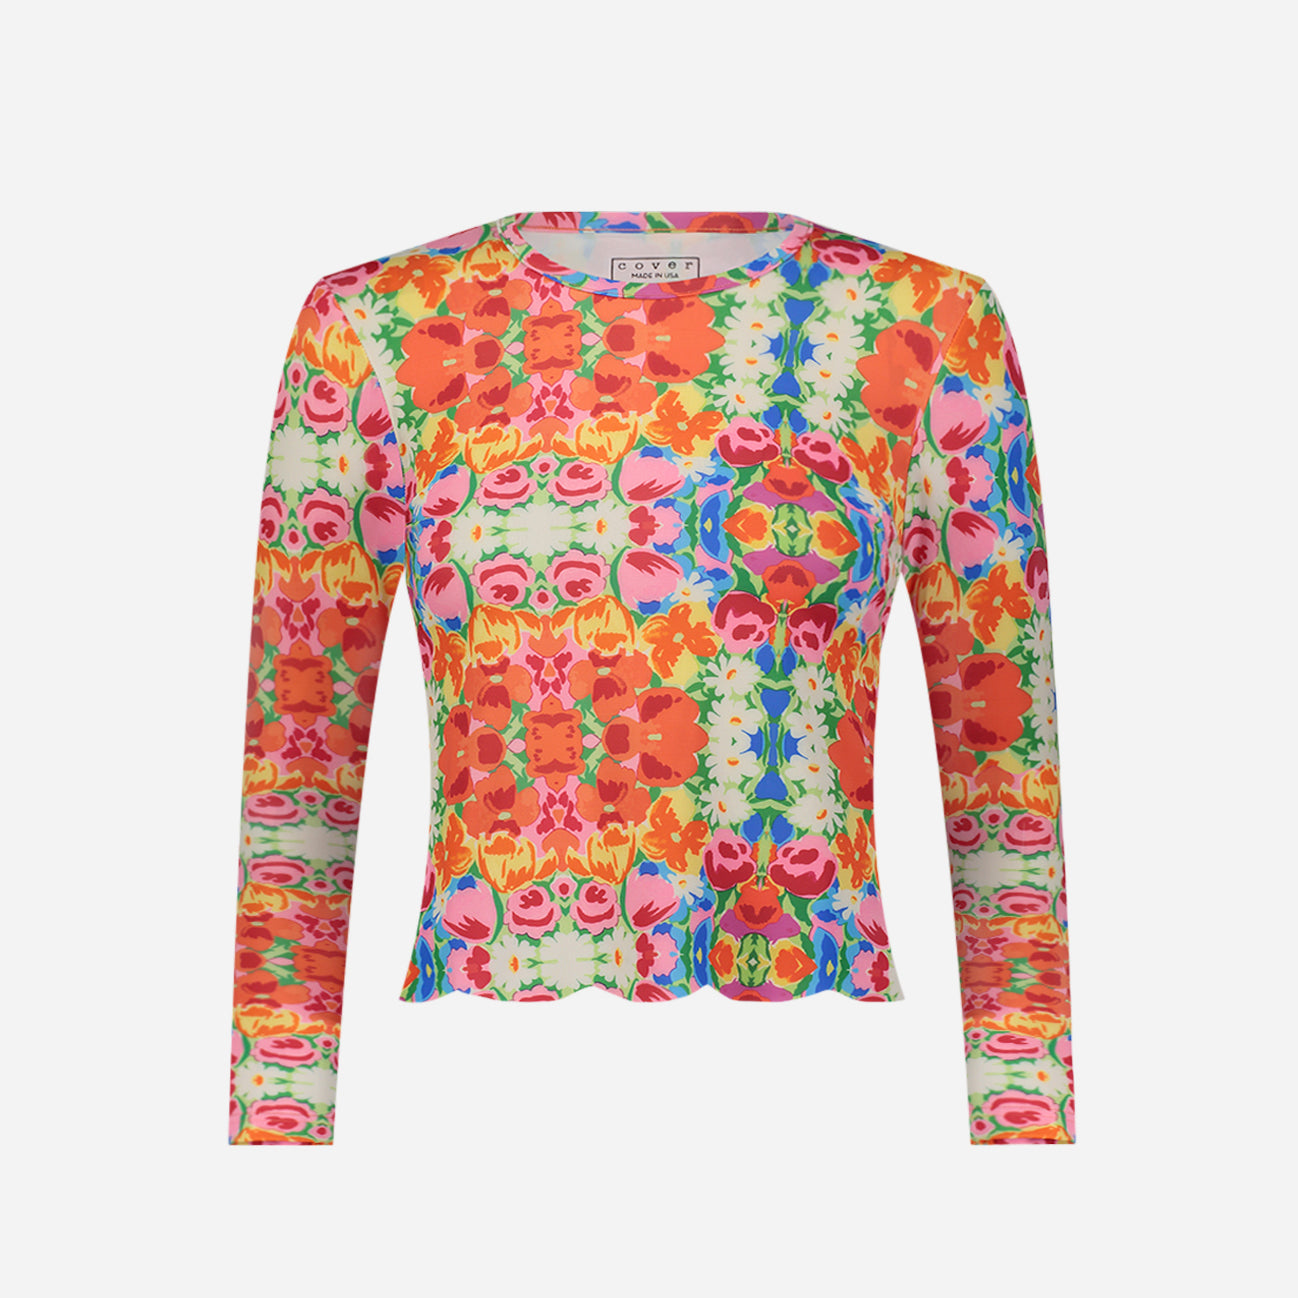 Cover Swim x FV Scallop Cut Swim Shirt Bright Floral